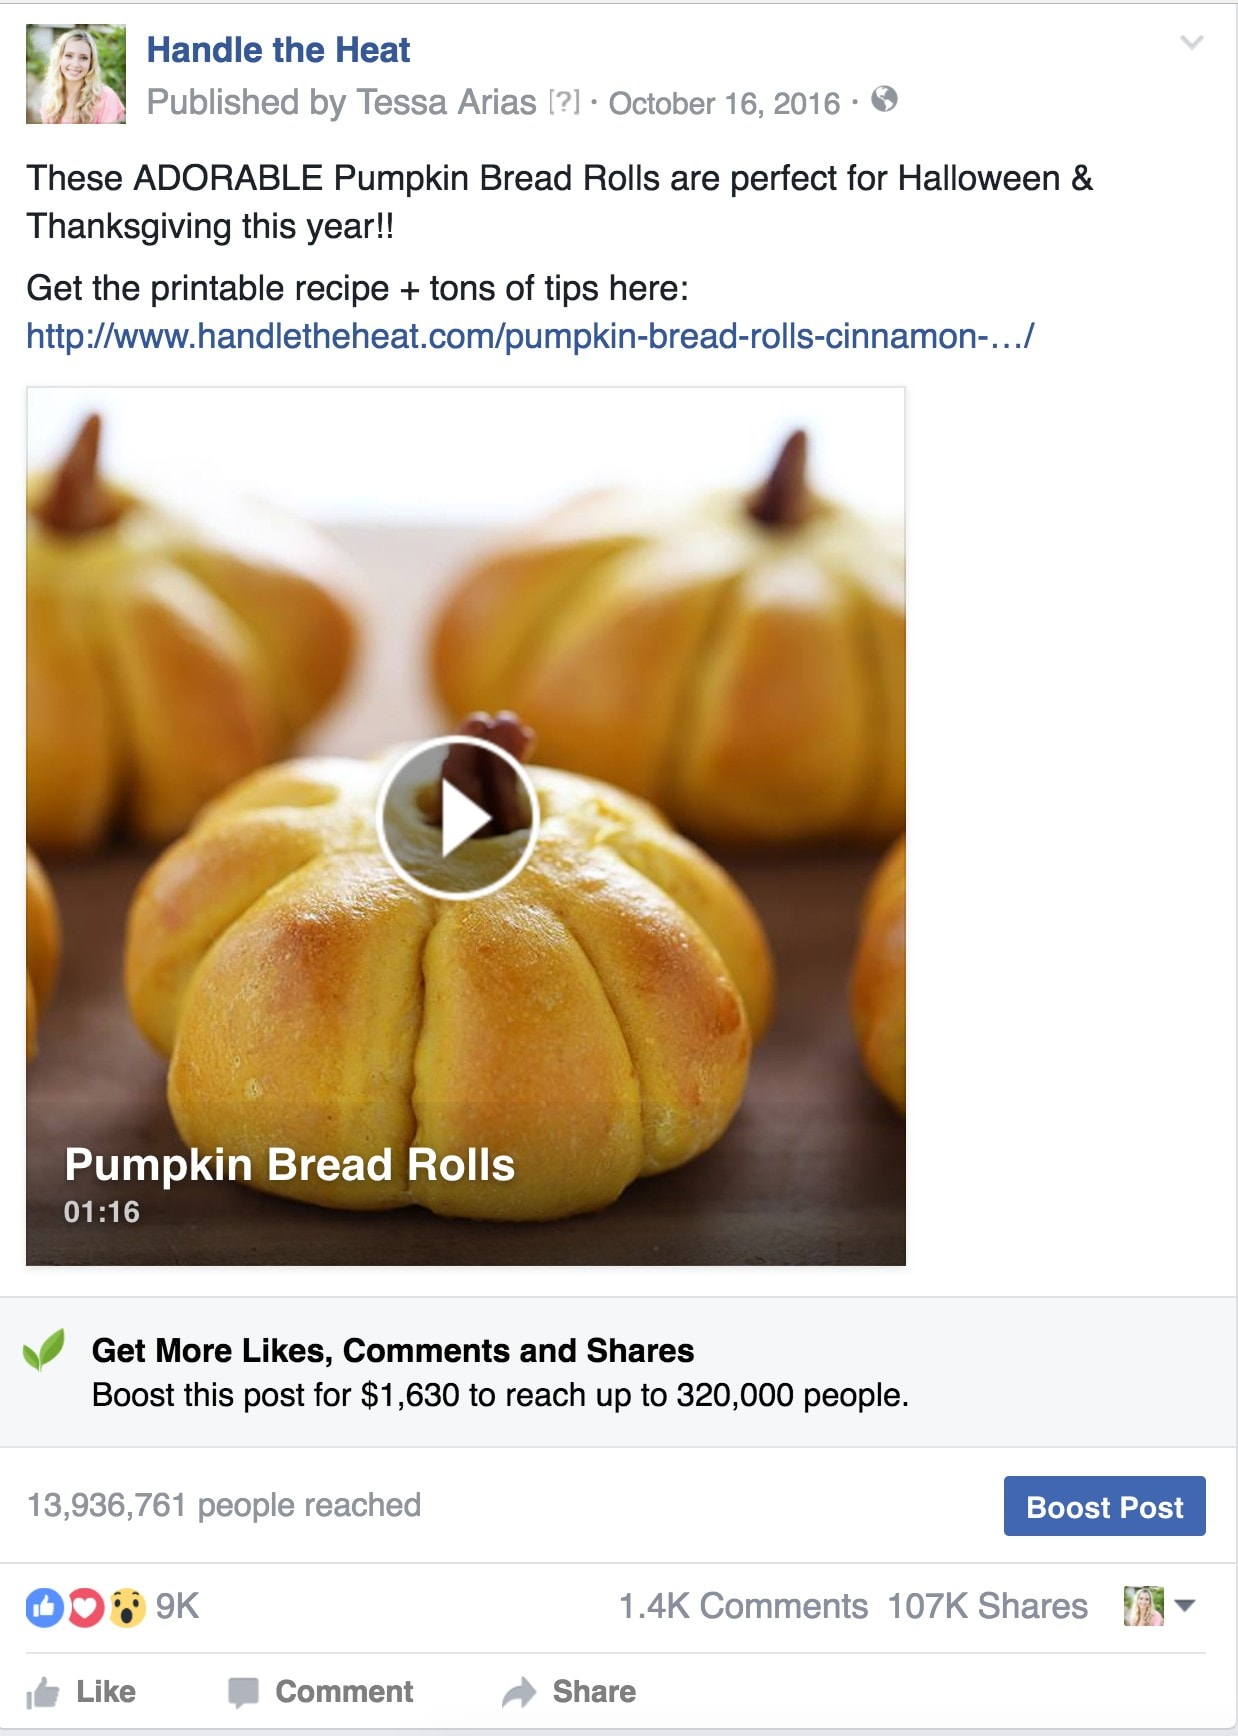 Handle the Heat Facebook Pumpkin Roll Video